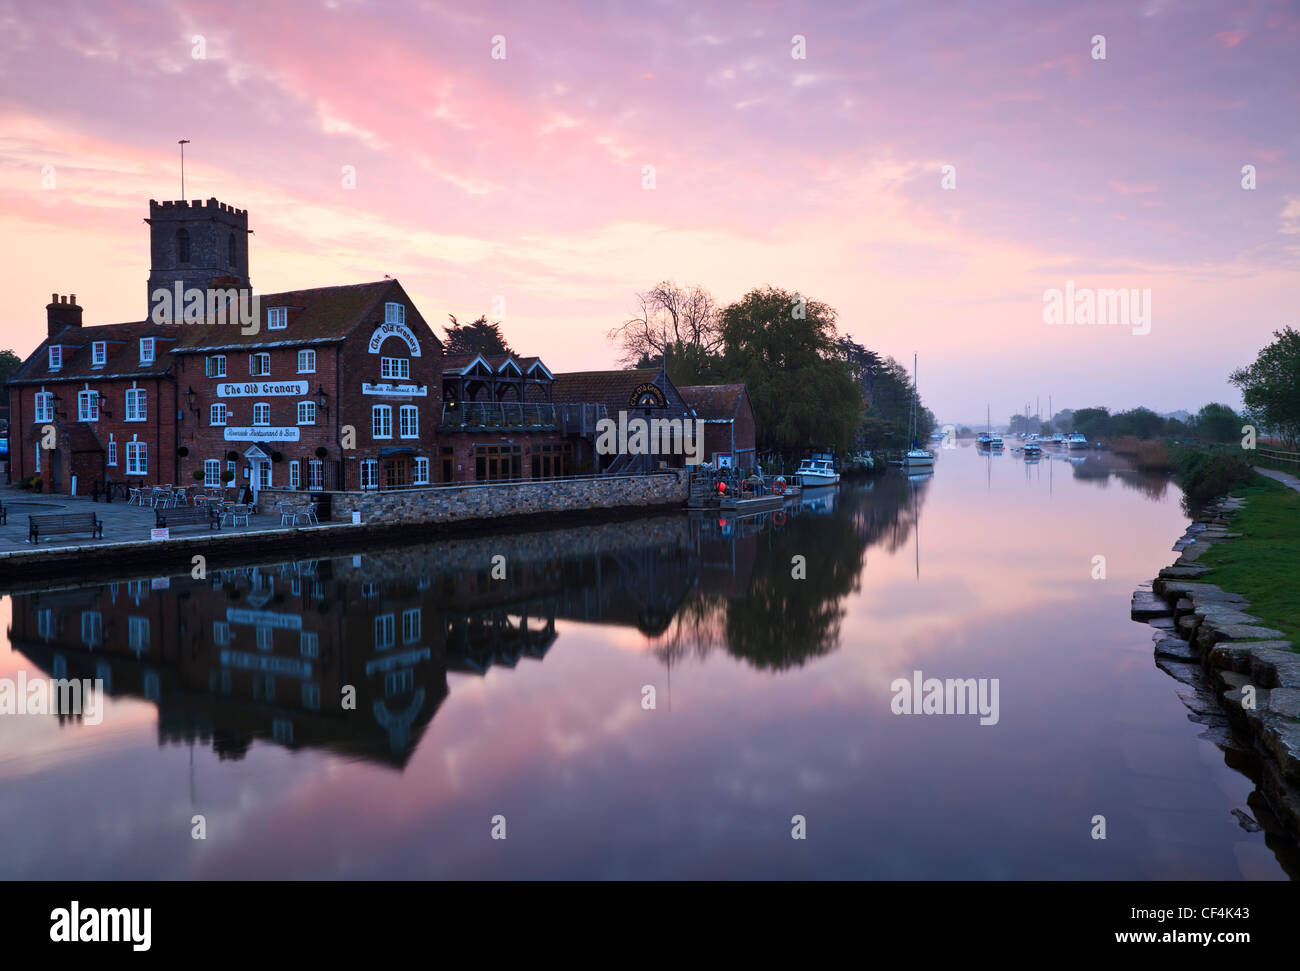 Dawn over The Old Granary, Riverside Restaurant and Bar by the River Frome at Wareham Quay. - Stock Image